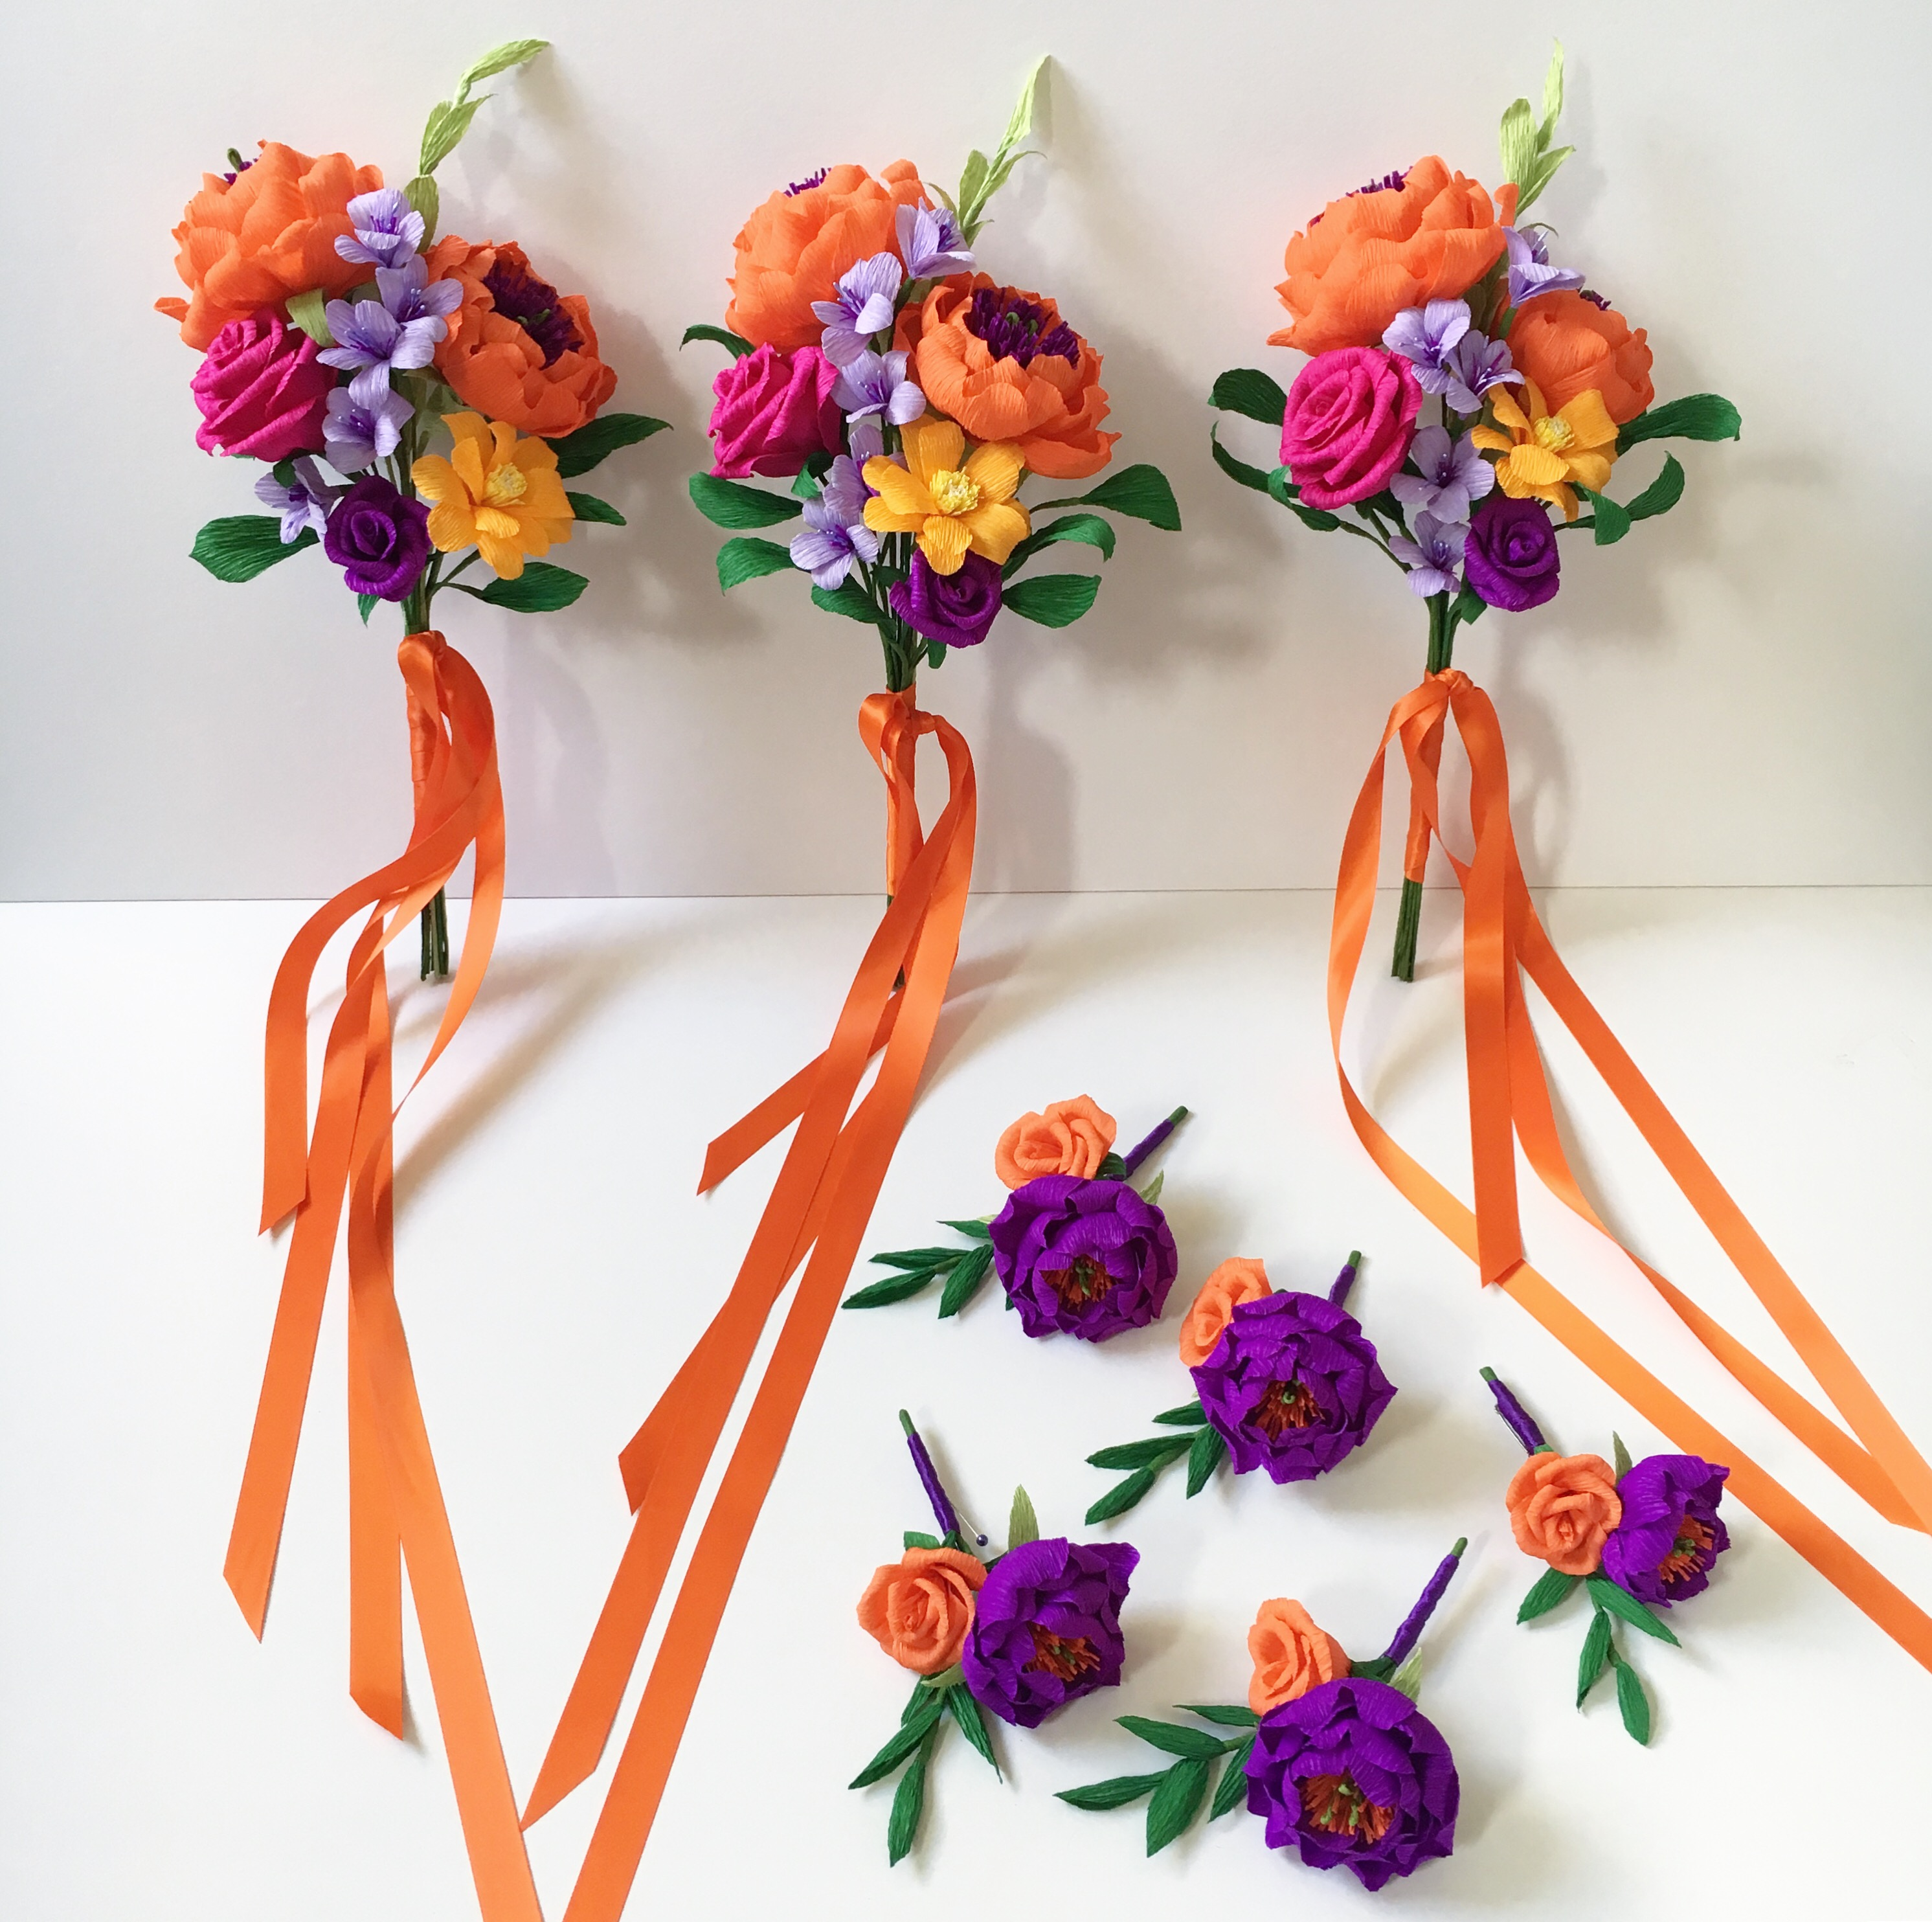 Paper Bridesmaid bouquets and Buttonholes by Petal and Bird